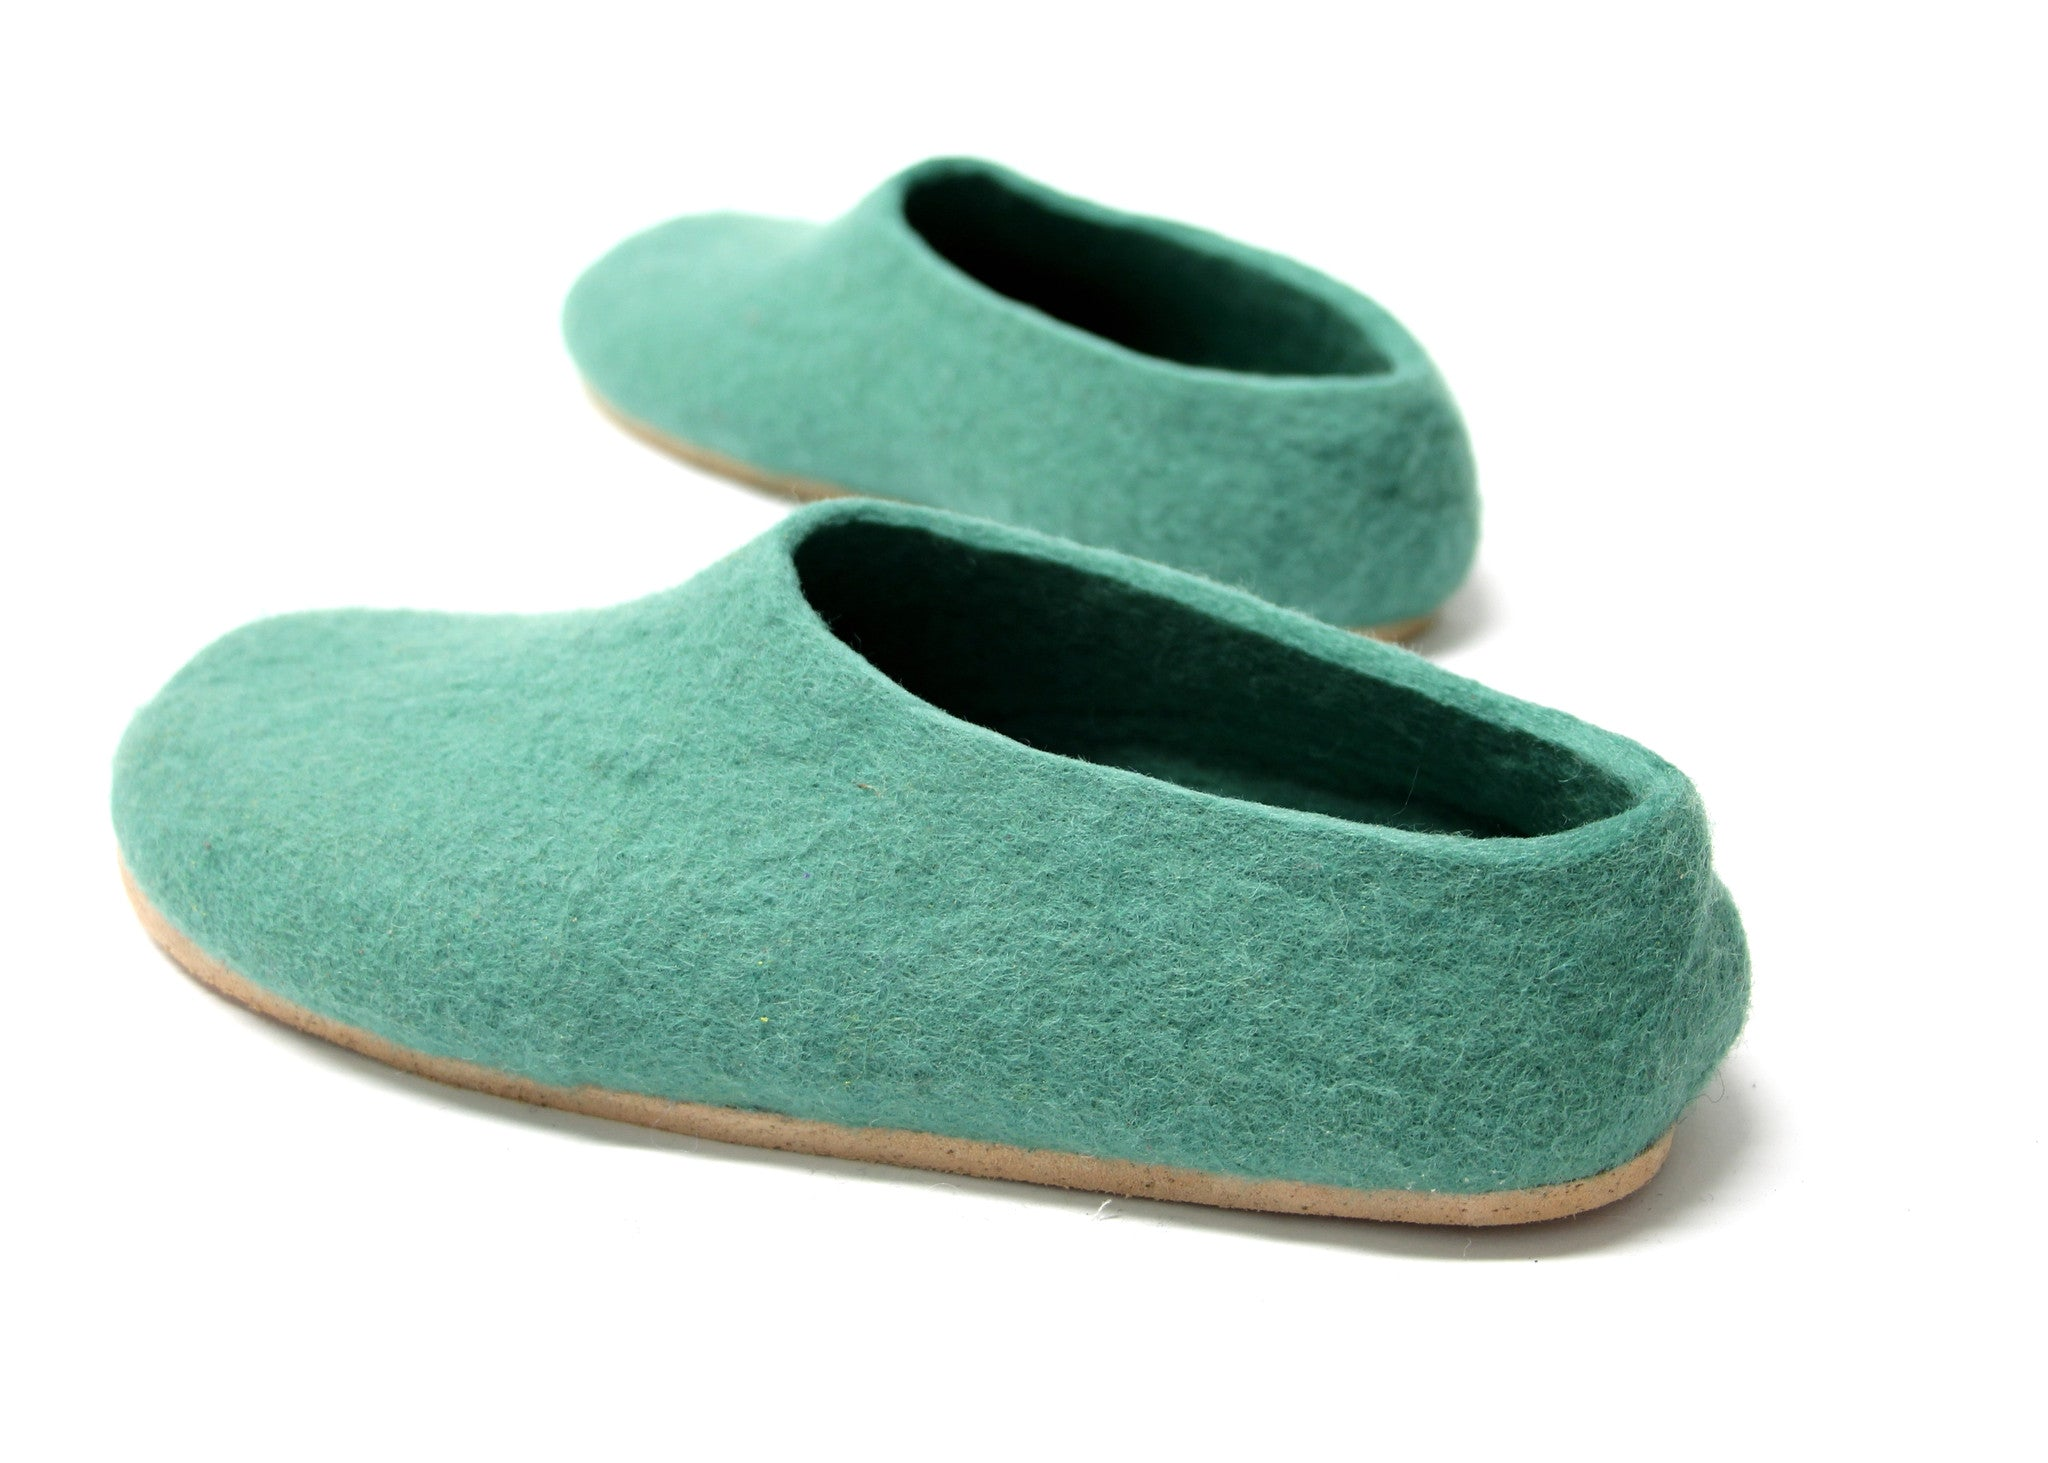 Womens Felt Slippers Lucite Green Contrast Sole - Wool Walker  - 1